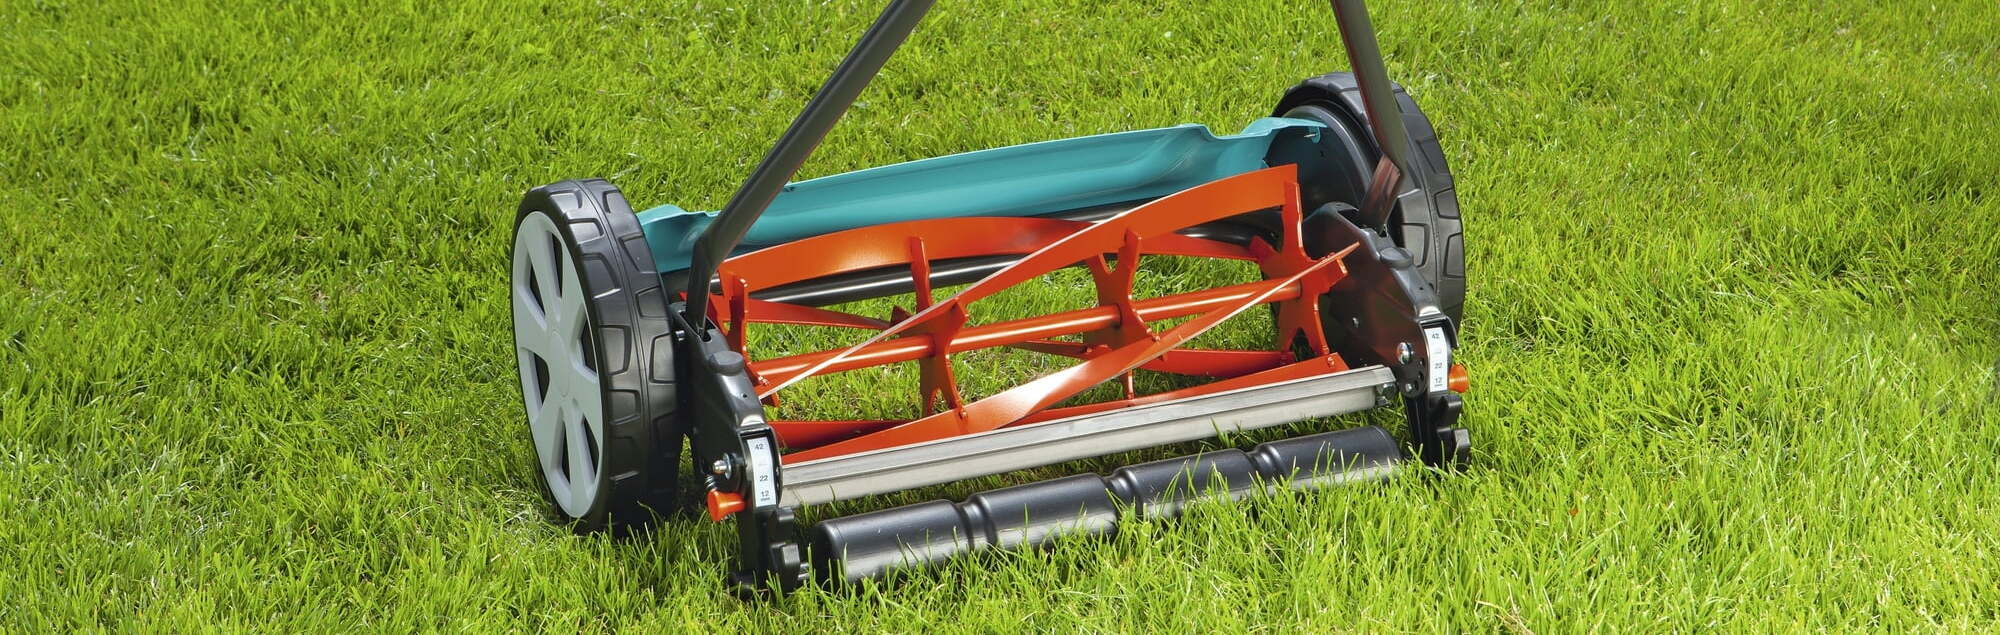 Best Reel Lawn Mowers in 2020 (Compare & Filter tool)